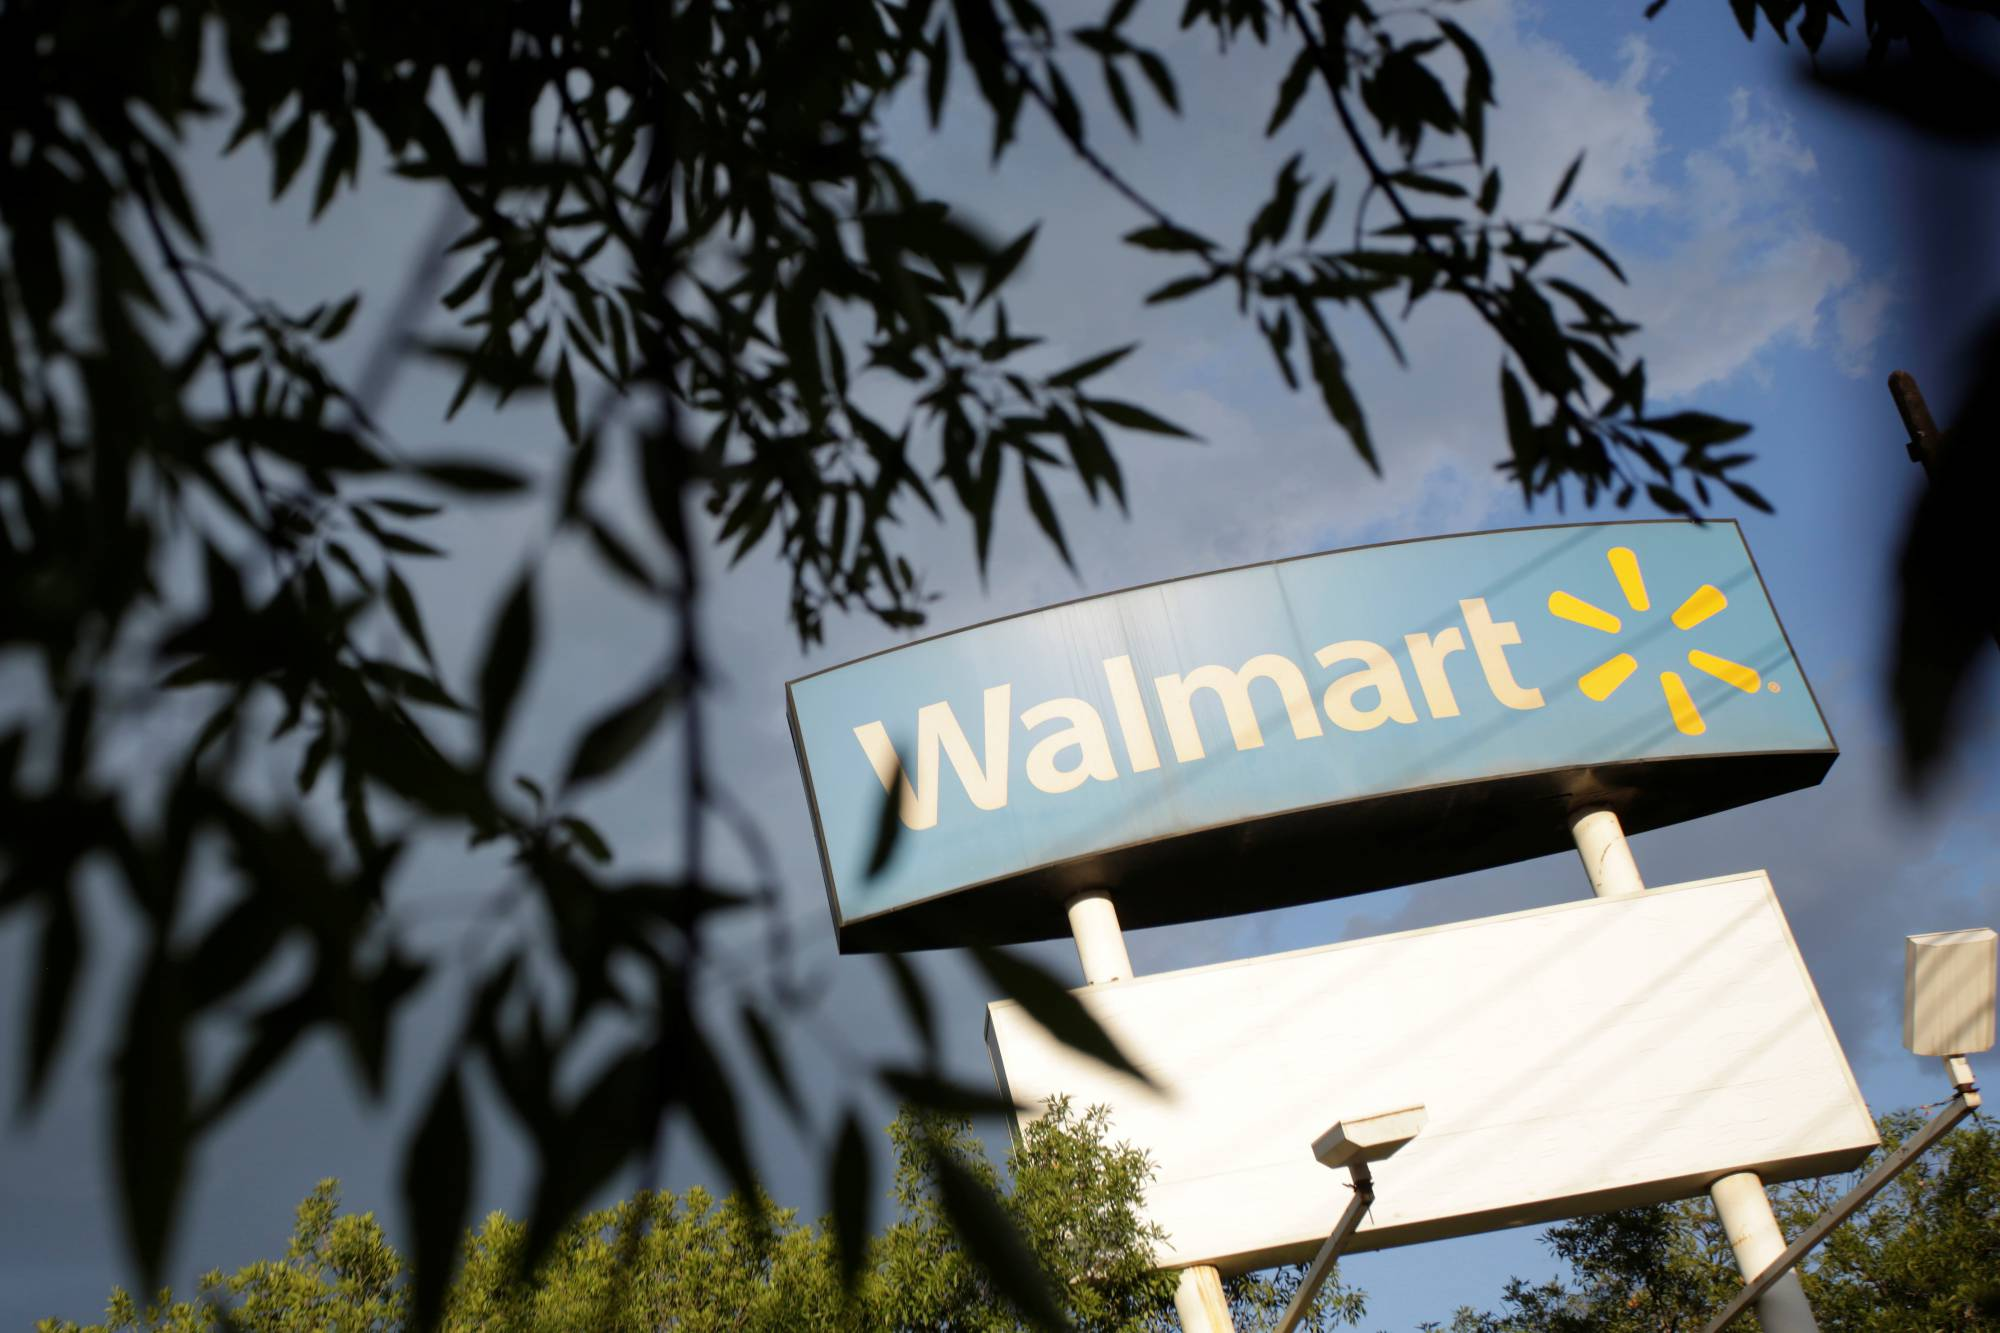 Walmart Partners With Anthem to Benefit Medicare Advantage